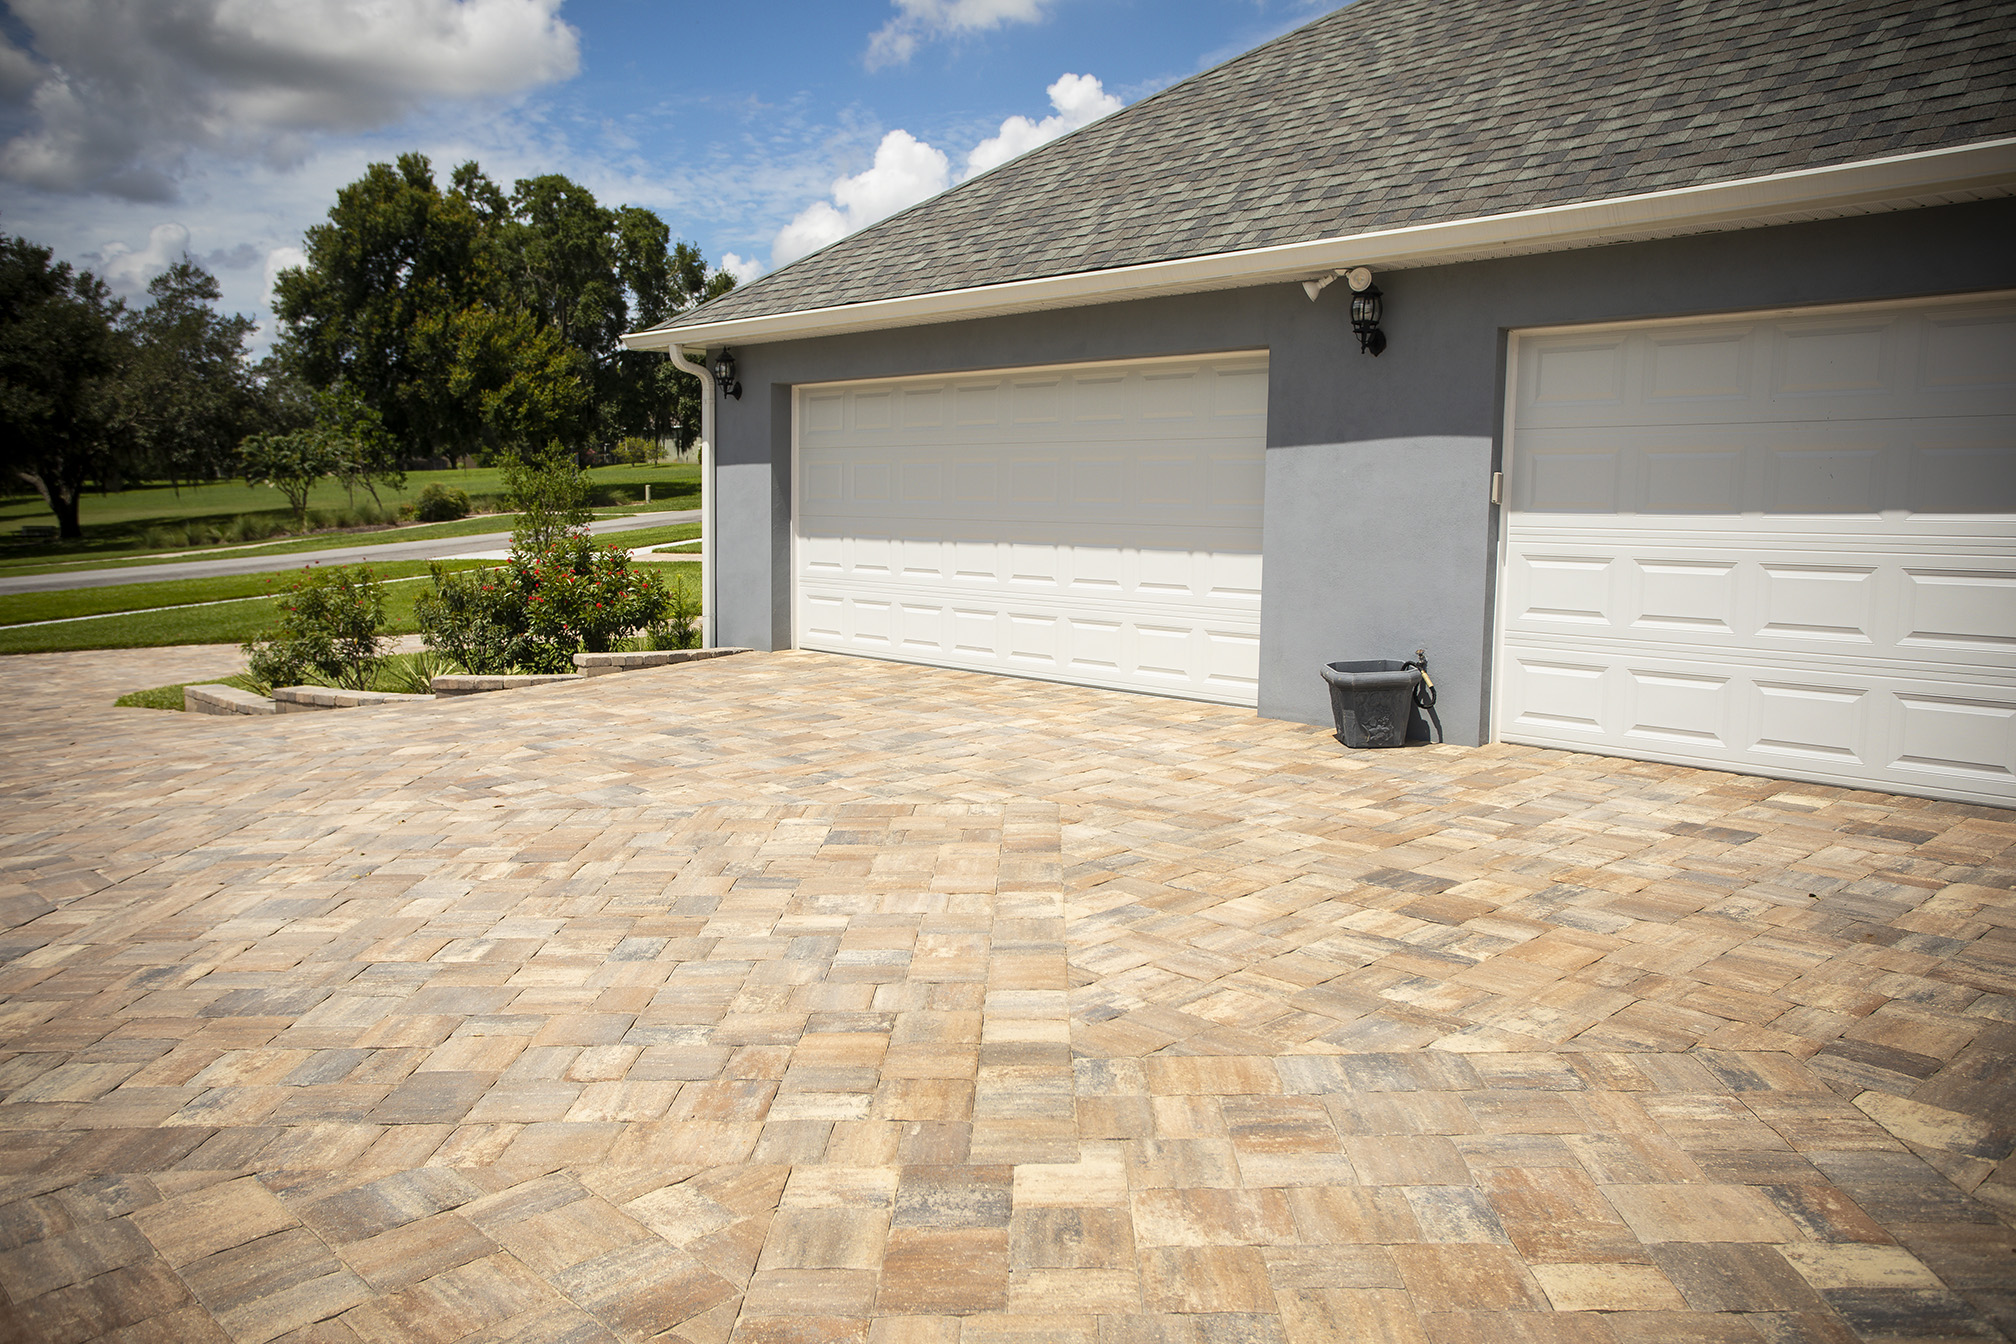 paver driveway and garage in Florida